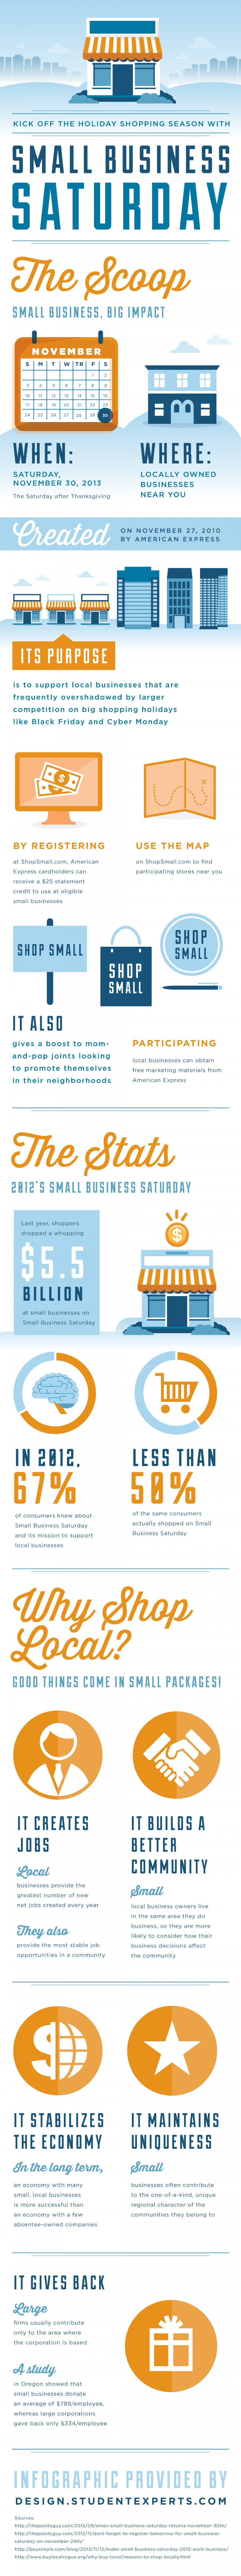 kick-off-the-holiday-shopping-season-with-small-business-saturday_5293884549441_w1500